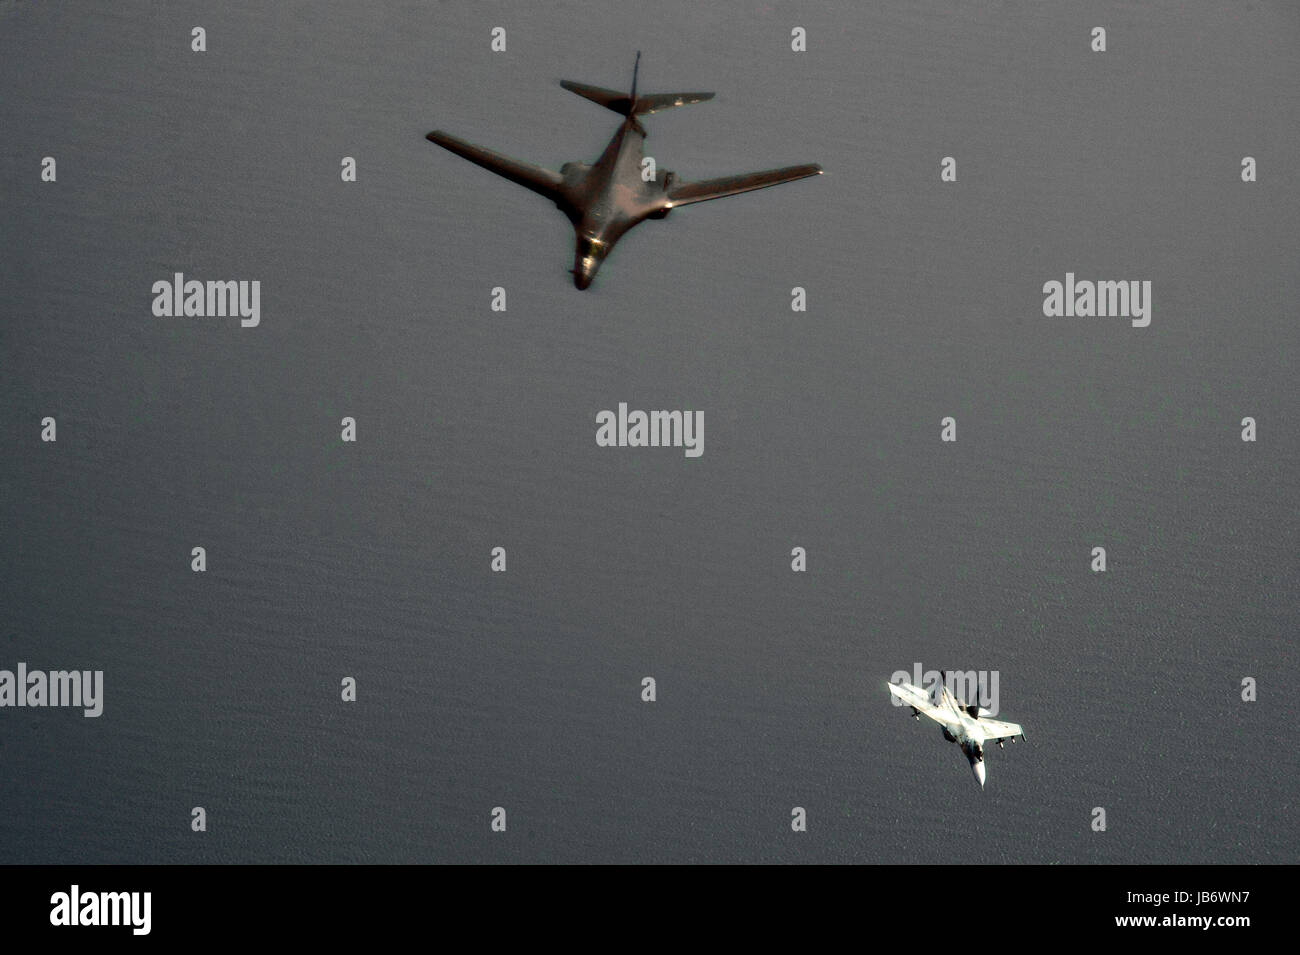 Baltic Sea. 09th June, 2017. A U.S. Air Force B-1B Lancer bomber, left, from the 28th Bomb Wing is intercepted by - Stock Image